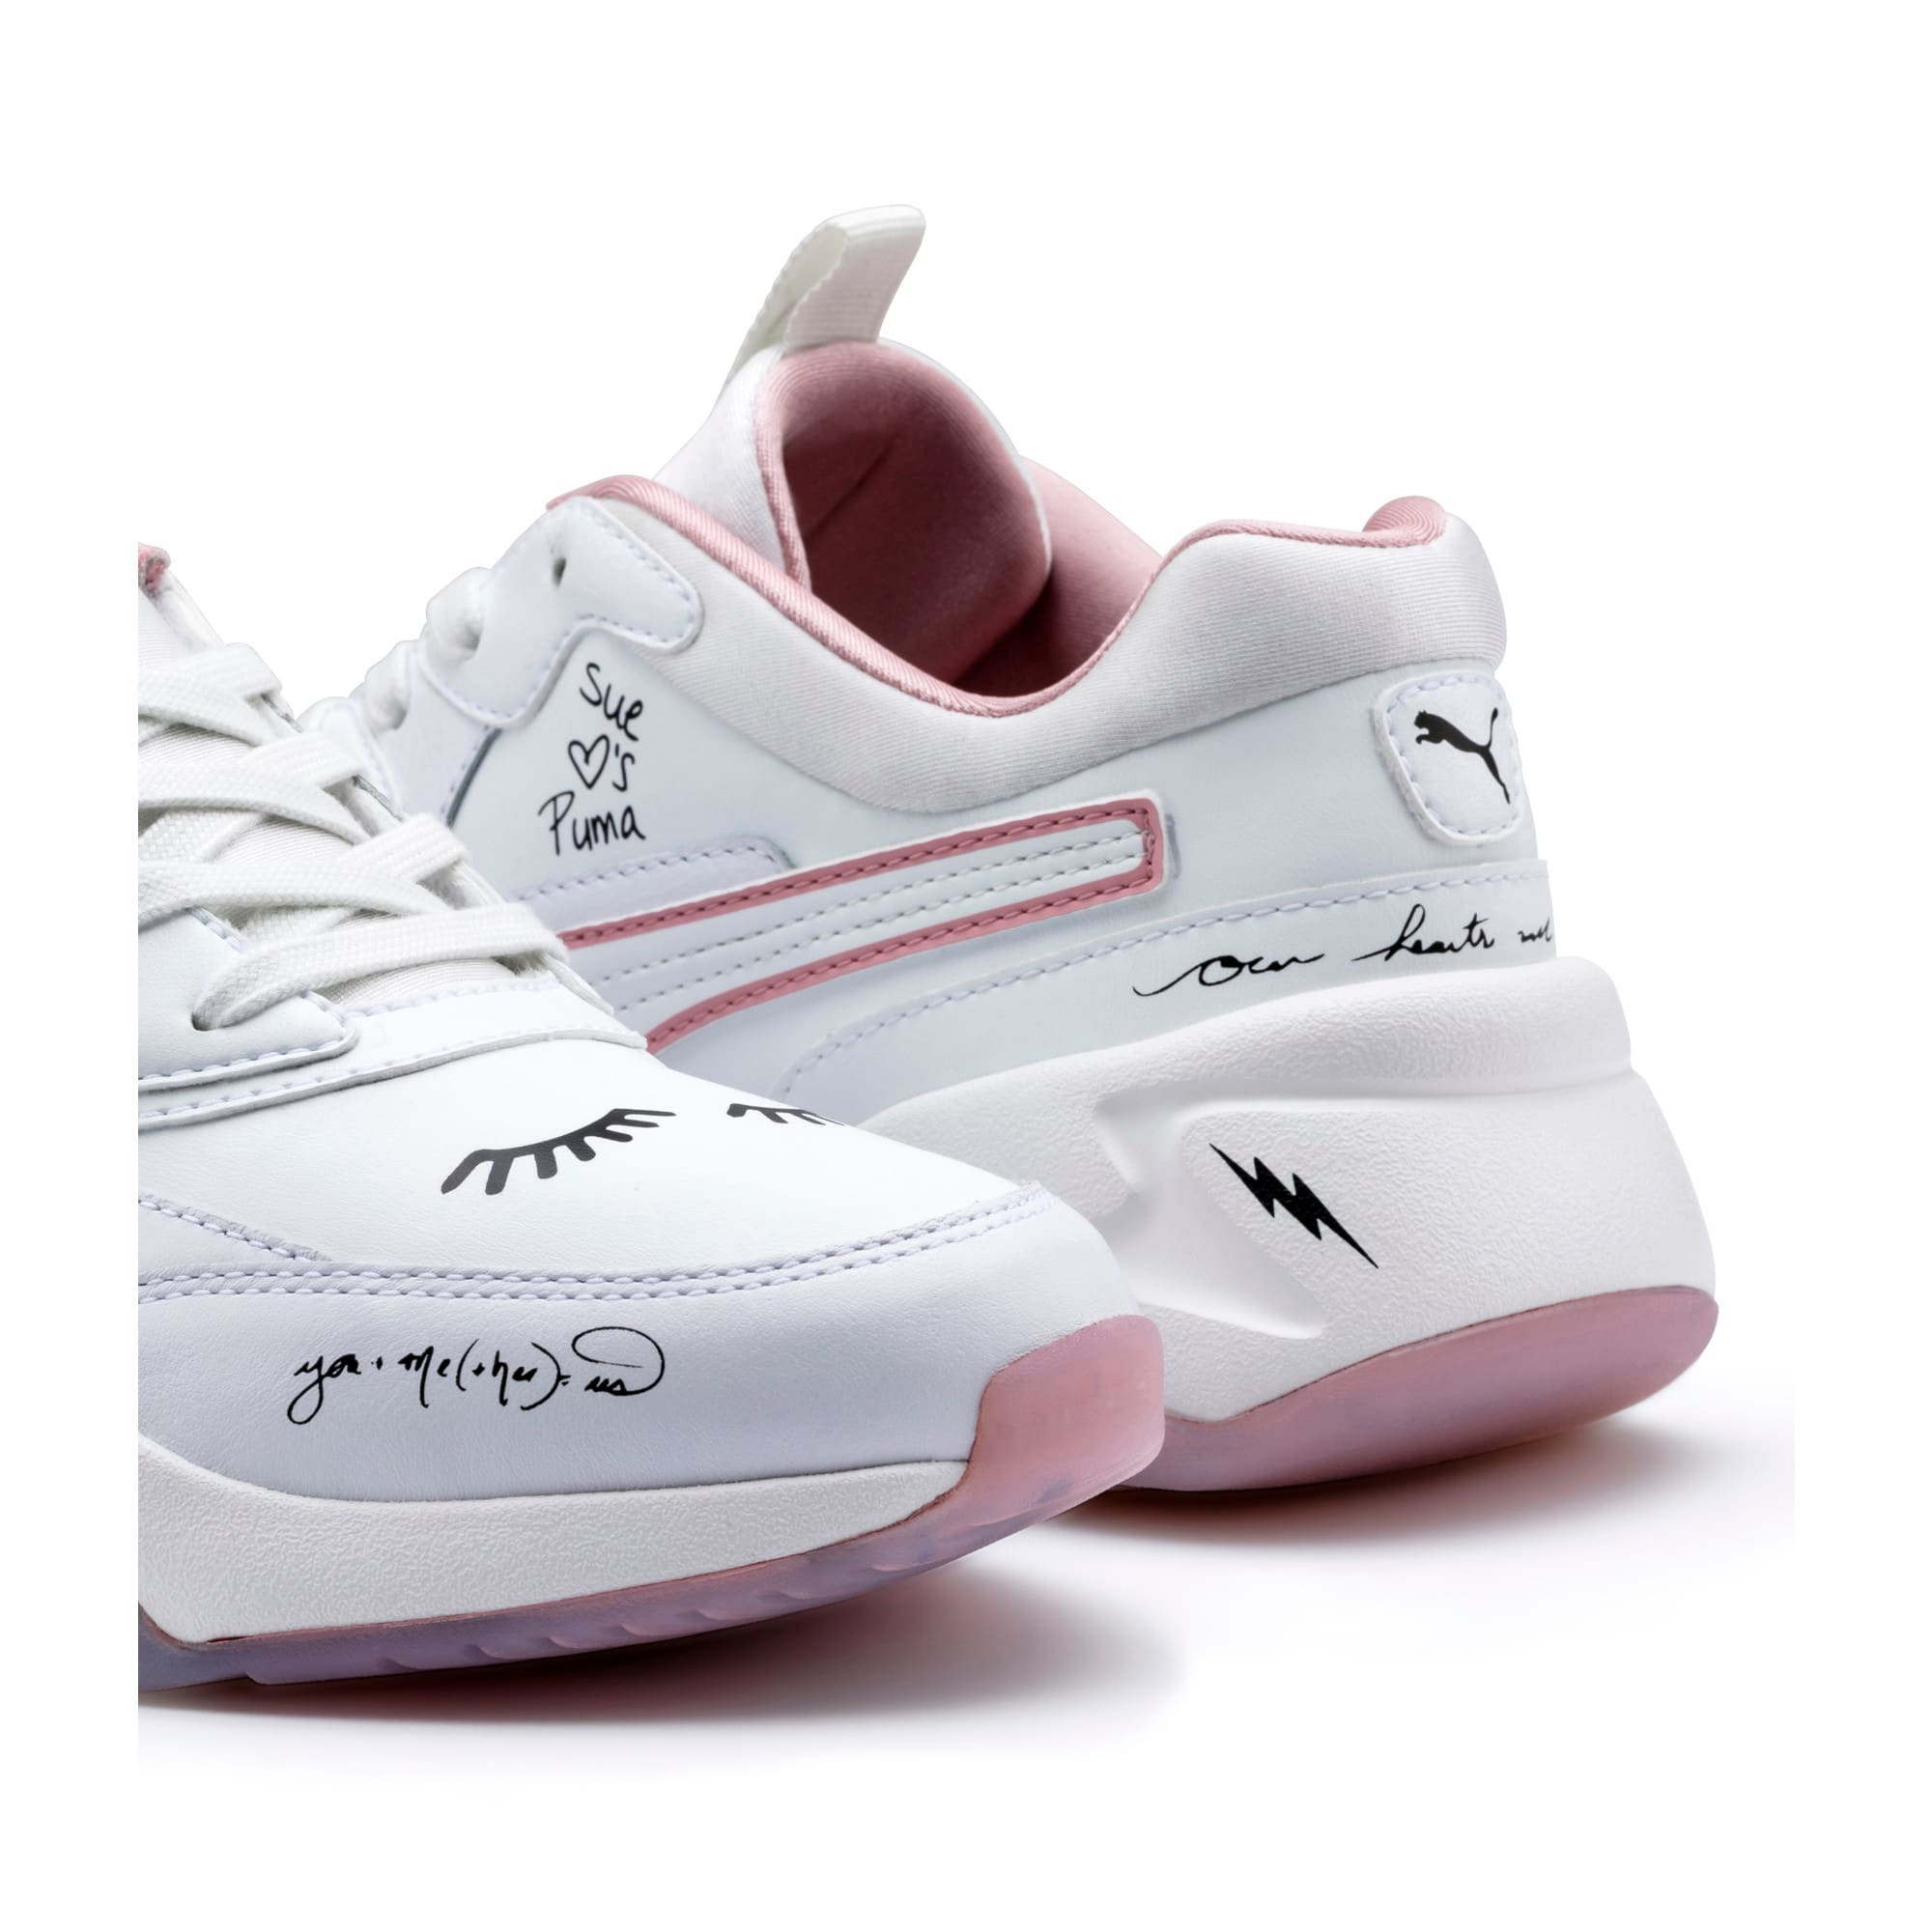 Thumbnail 9 of PUMA x SUE TSAI Nova Women's Trainers, Bright White-Bright White, medium